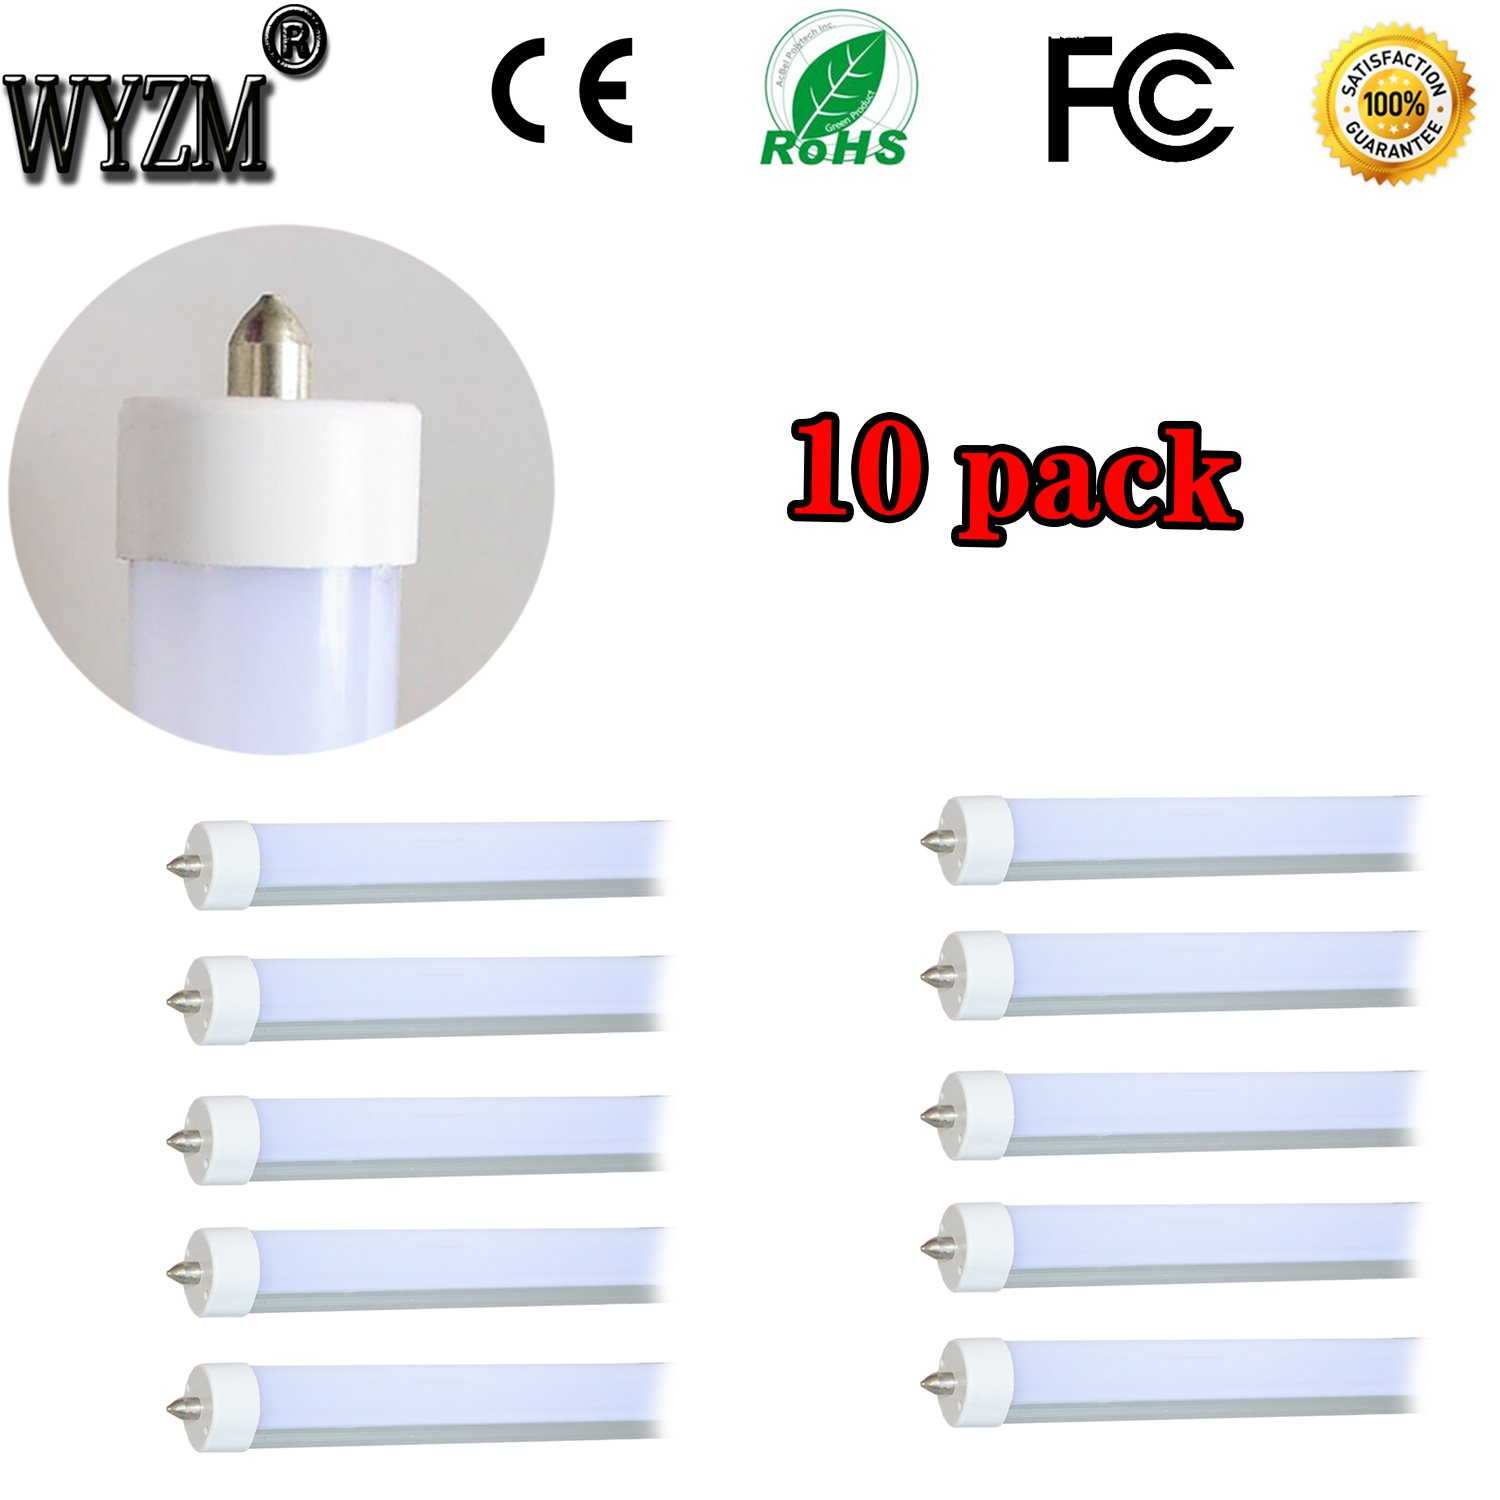 40W 96'' T12 8ft LED Tube Single Pin,F96T12 8' LED Fluorescent Tube Replacement,120V 277V Input,4500K Neutral White,4000LM Frost lens Super Bright (10PCS 4500K Neutral White)